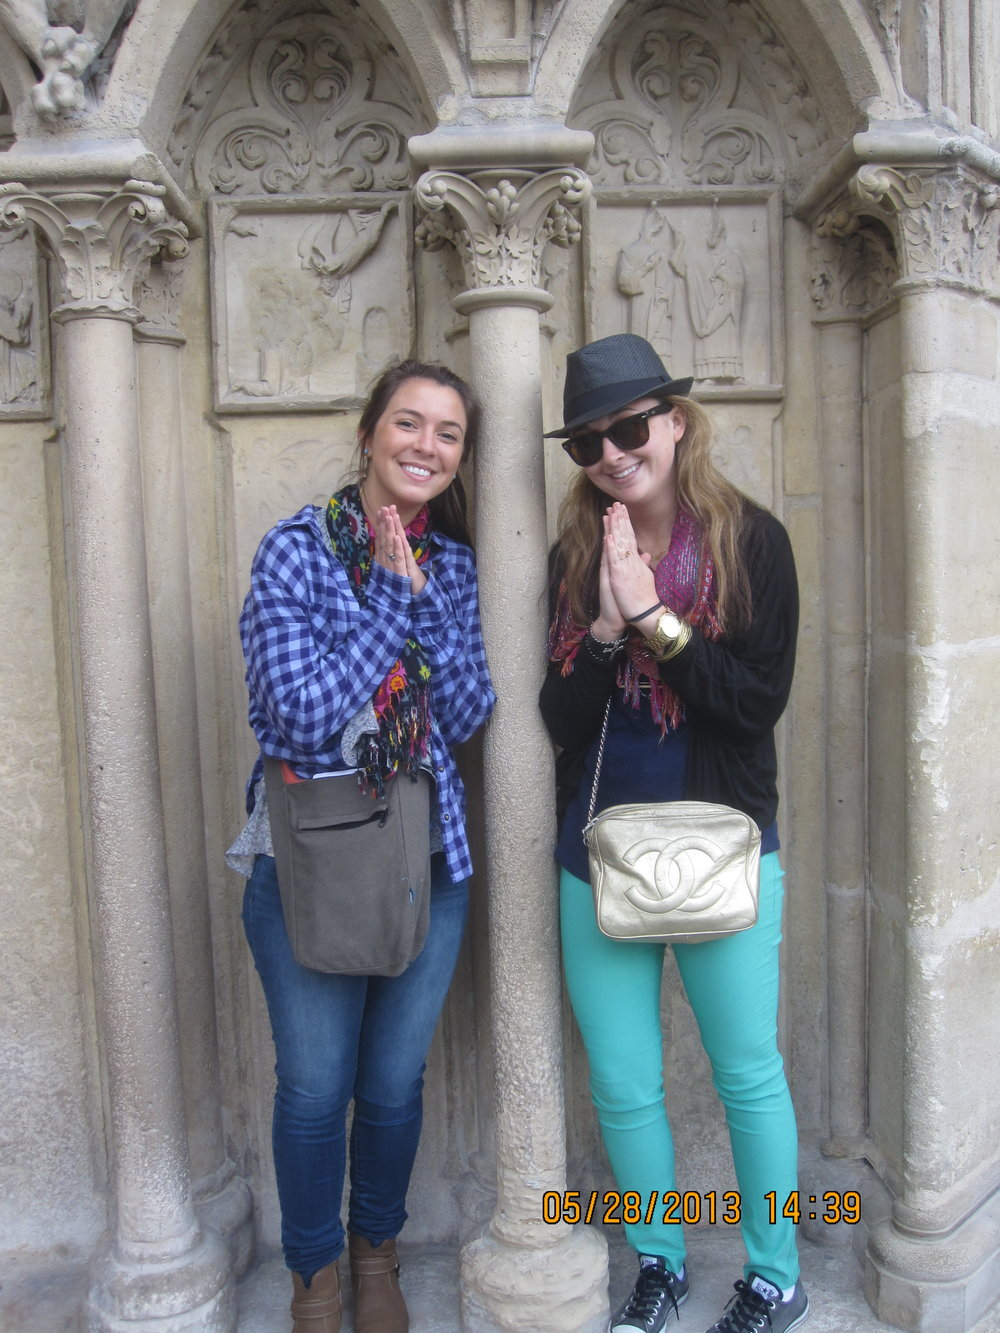 The best friend that changed my life and me mocking statues at Notre Dame circa 2013